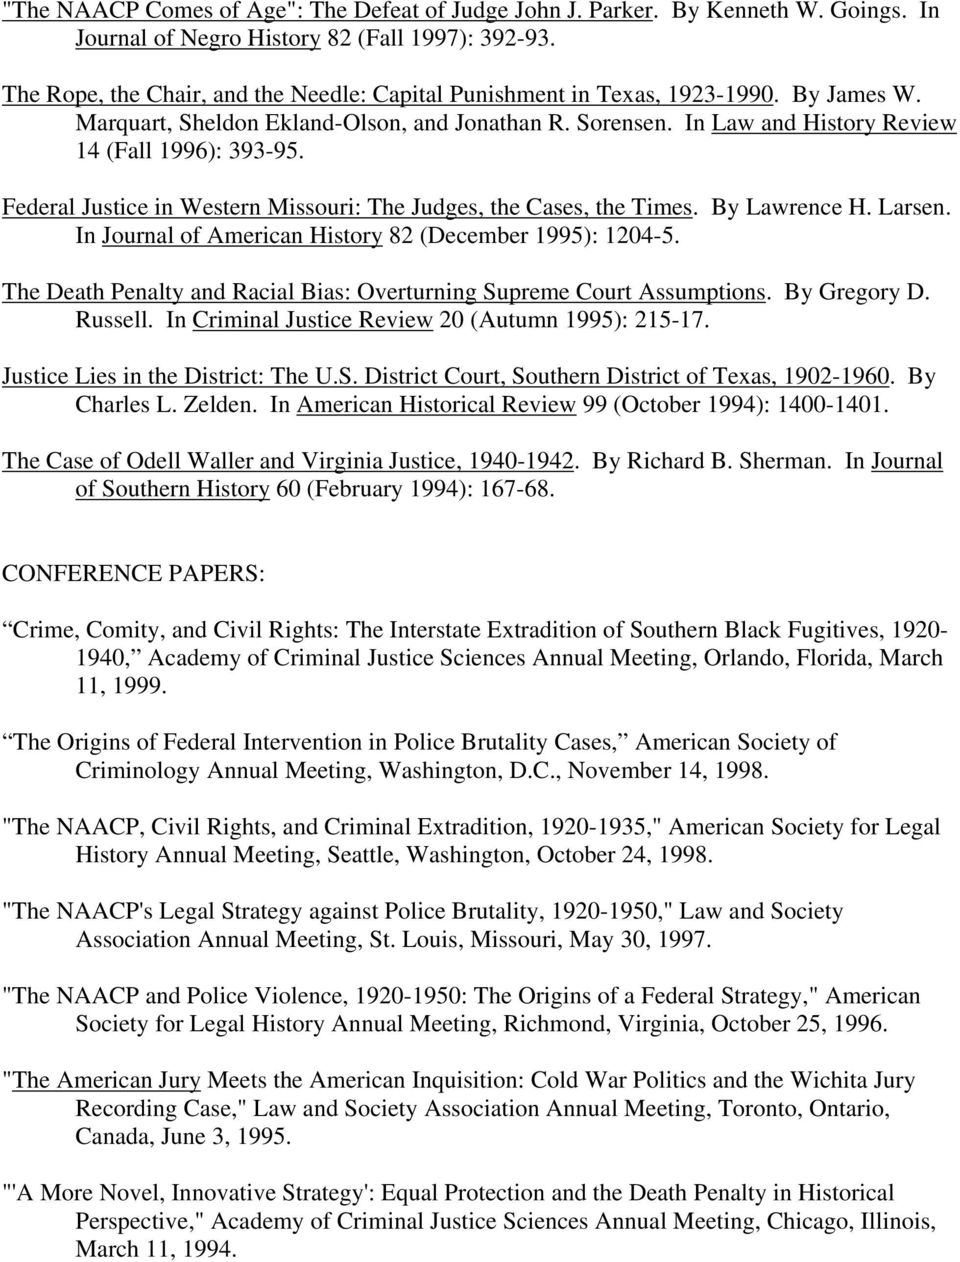 Federal Justice in Western Missouri: The Judges, the Cases, the Times. By Lawrence H. Larsen. In Journal of American History 82 (December 1995): 1204-5.